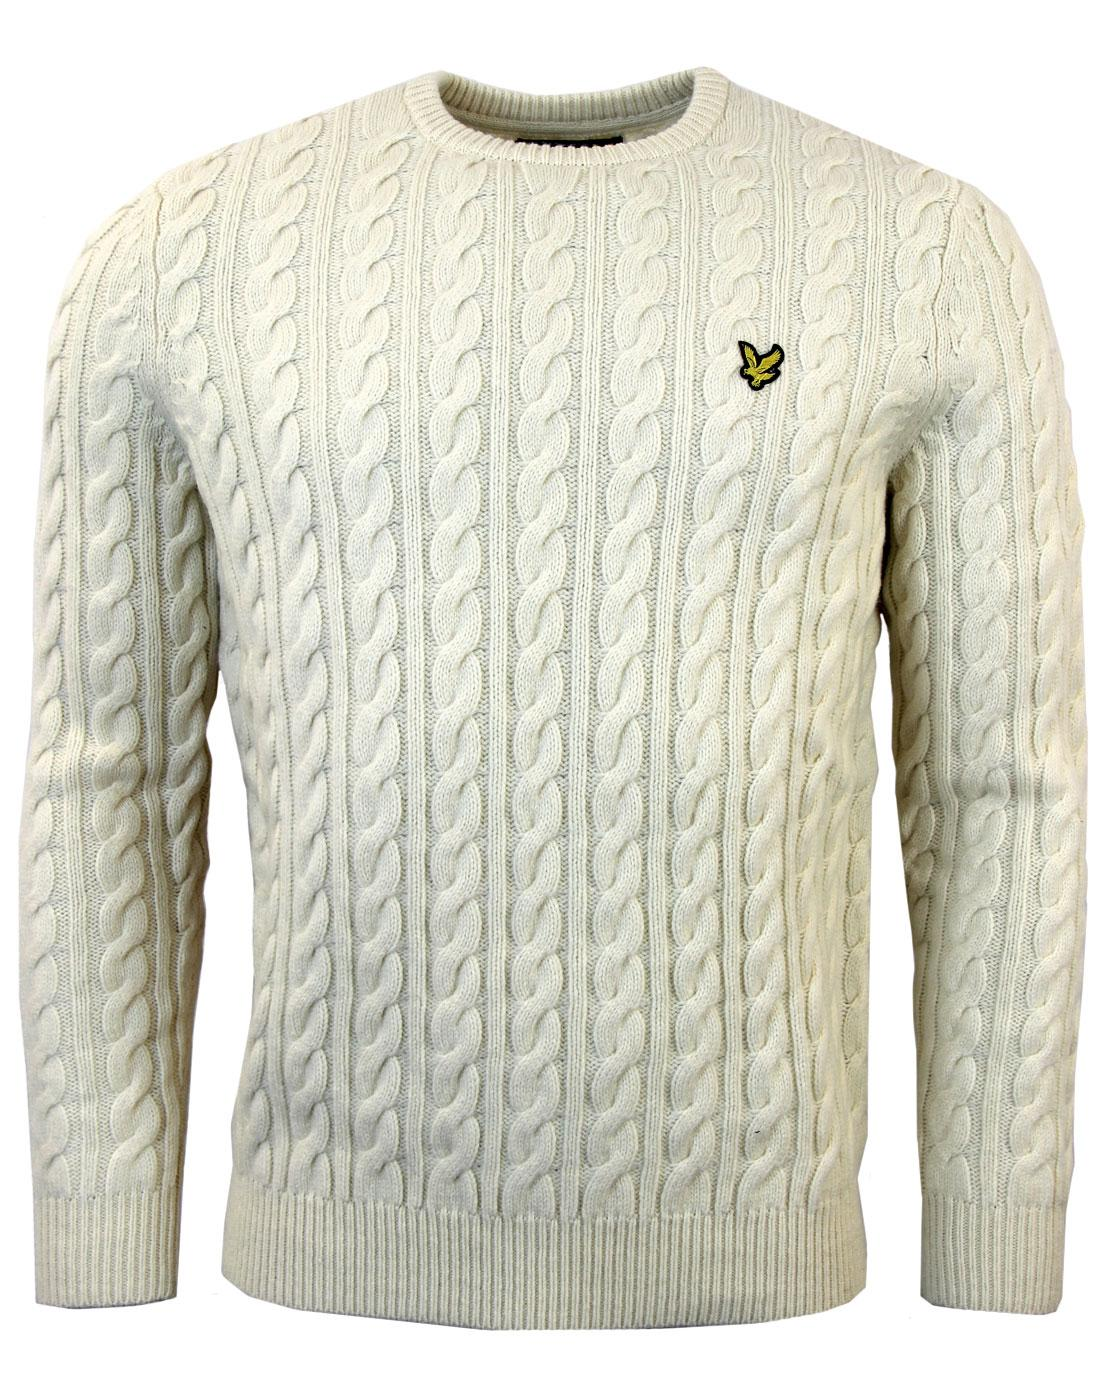 LYLE & SCOTT Retro Lambswool Cable Knit Jumper (I)